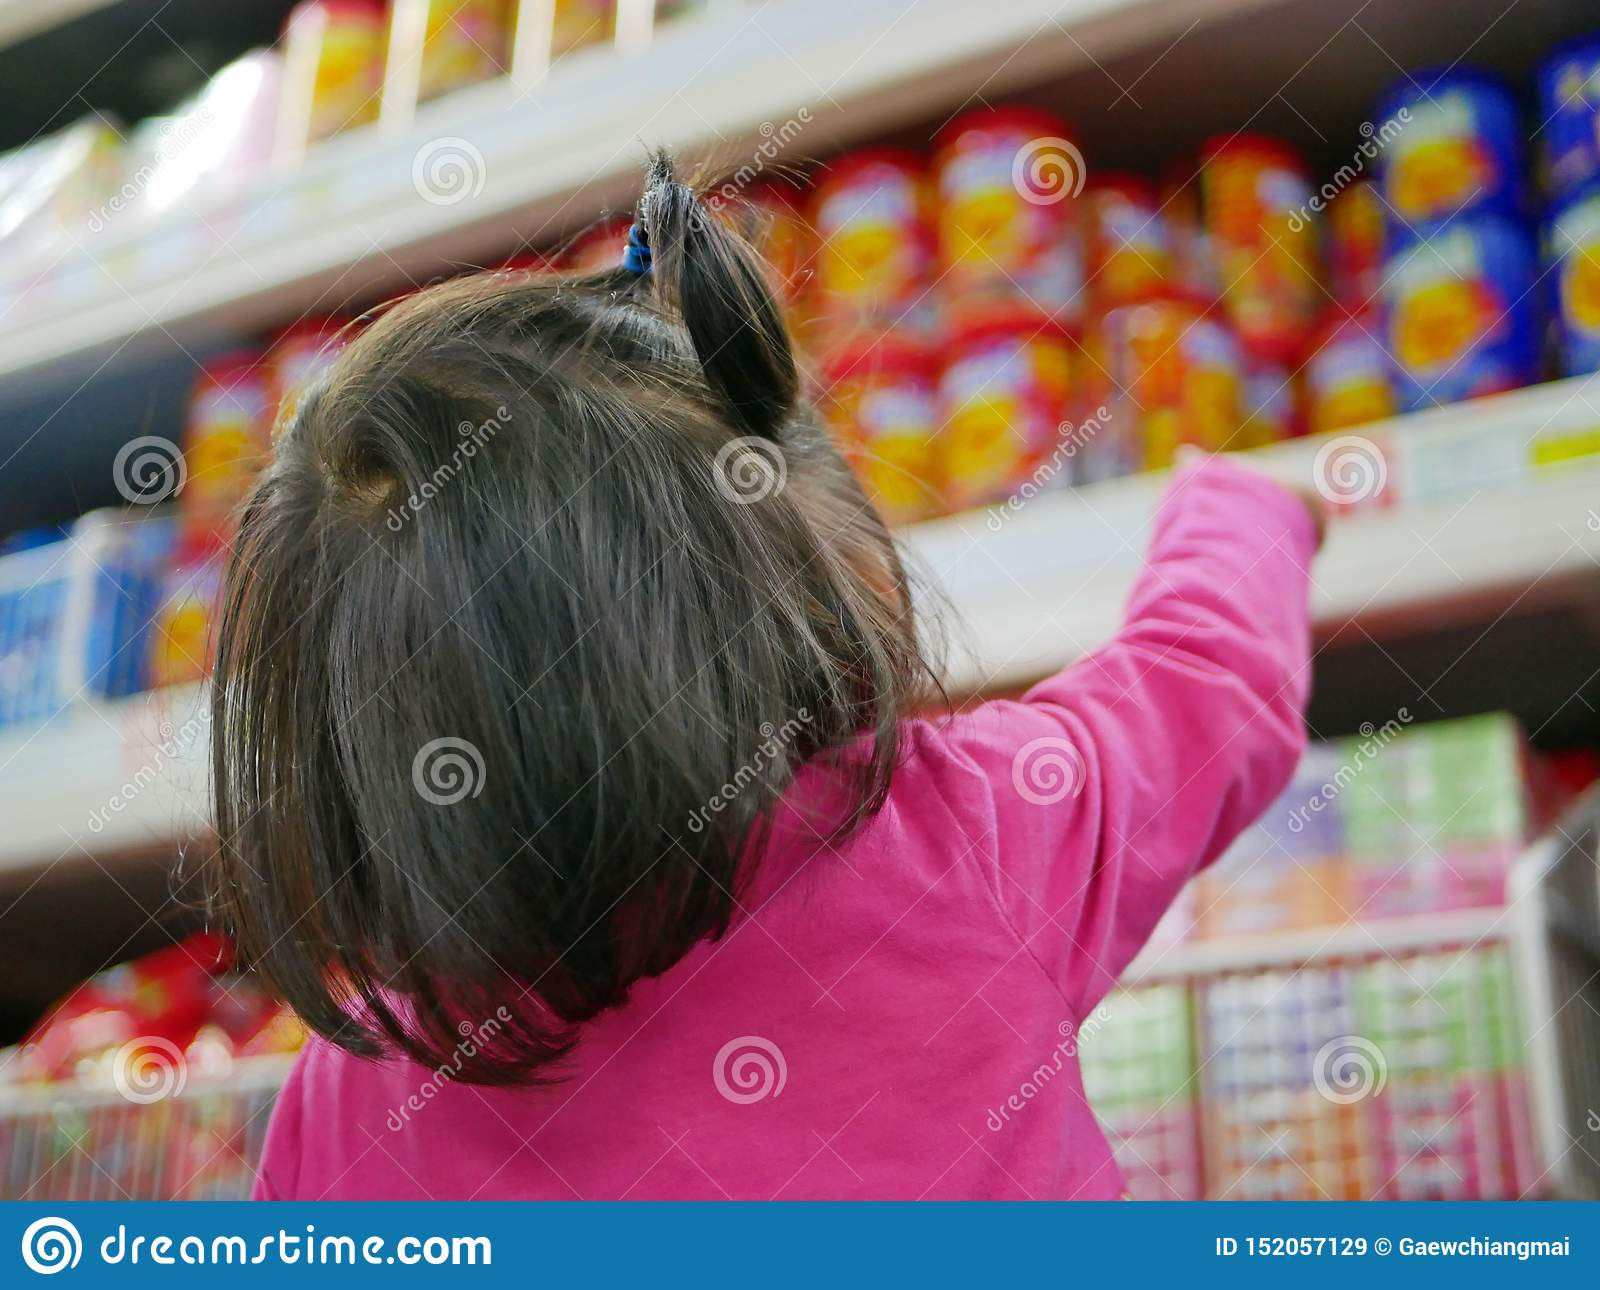 Little baby girl pointing at colorful snacks / candies on the shelves in a supermarket, wanting her parents to buy some for her